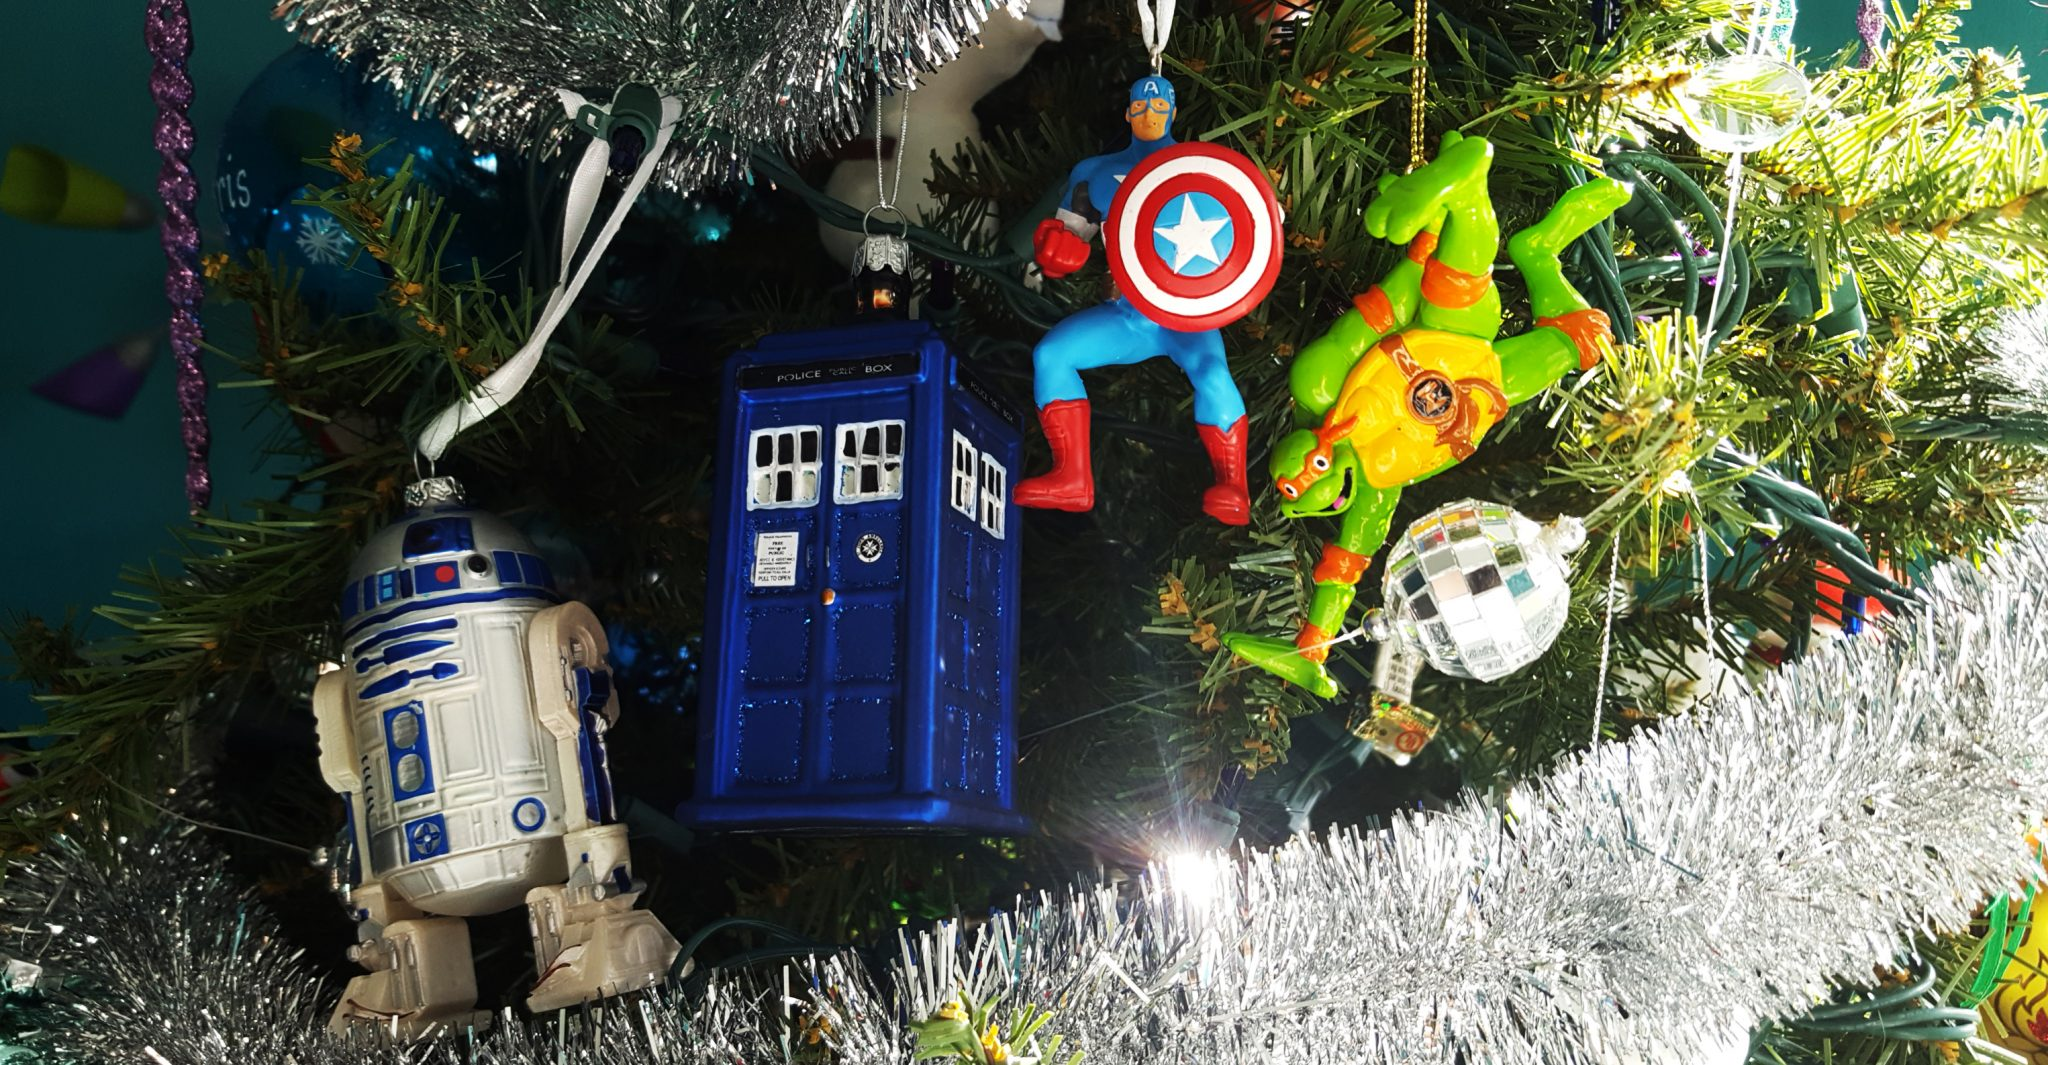 Christmas travel gifts for nerds - featuring Star Wars, Star Trek, Harry Potter, Game of Thrones, Marvel, and more